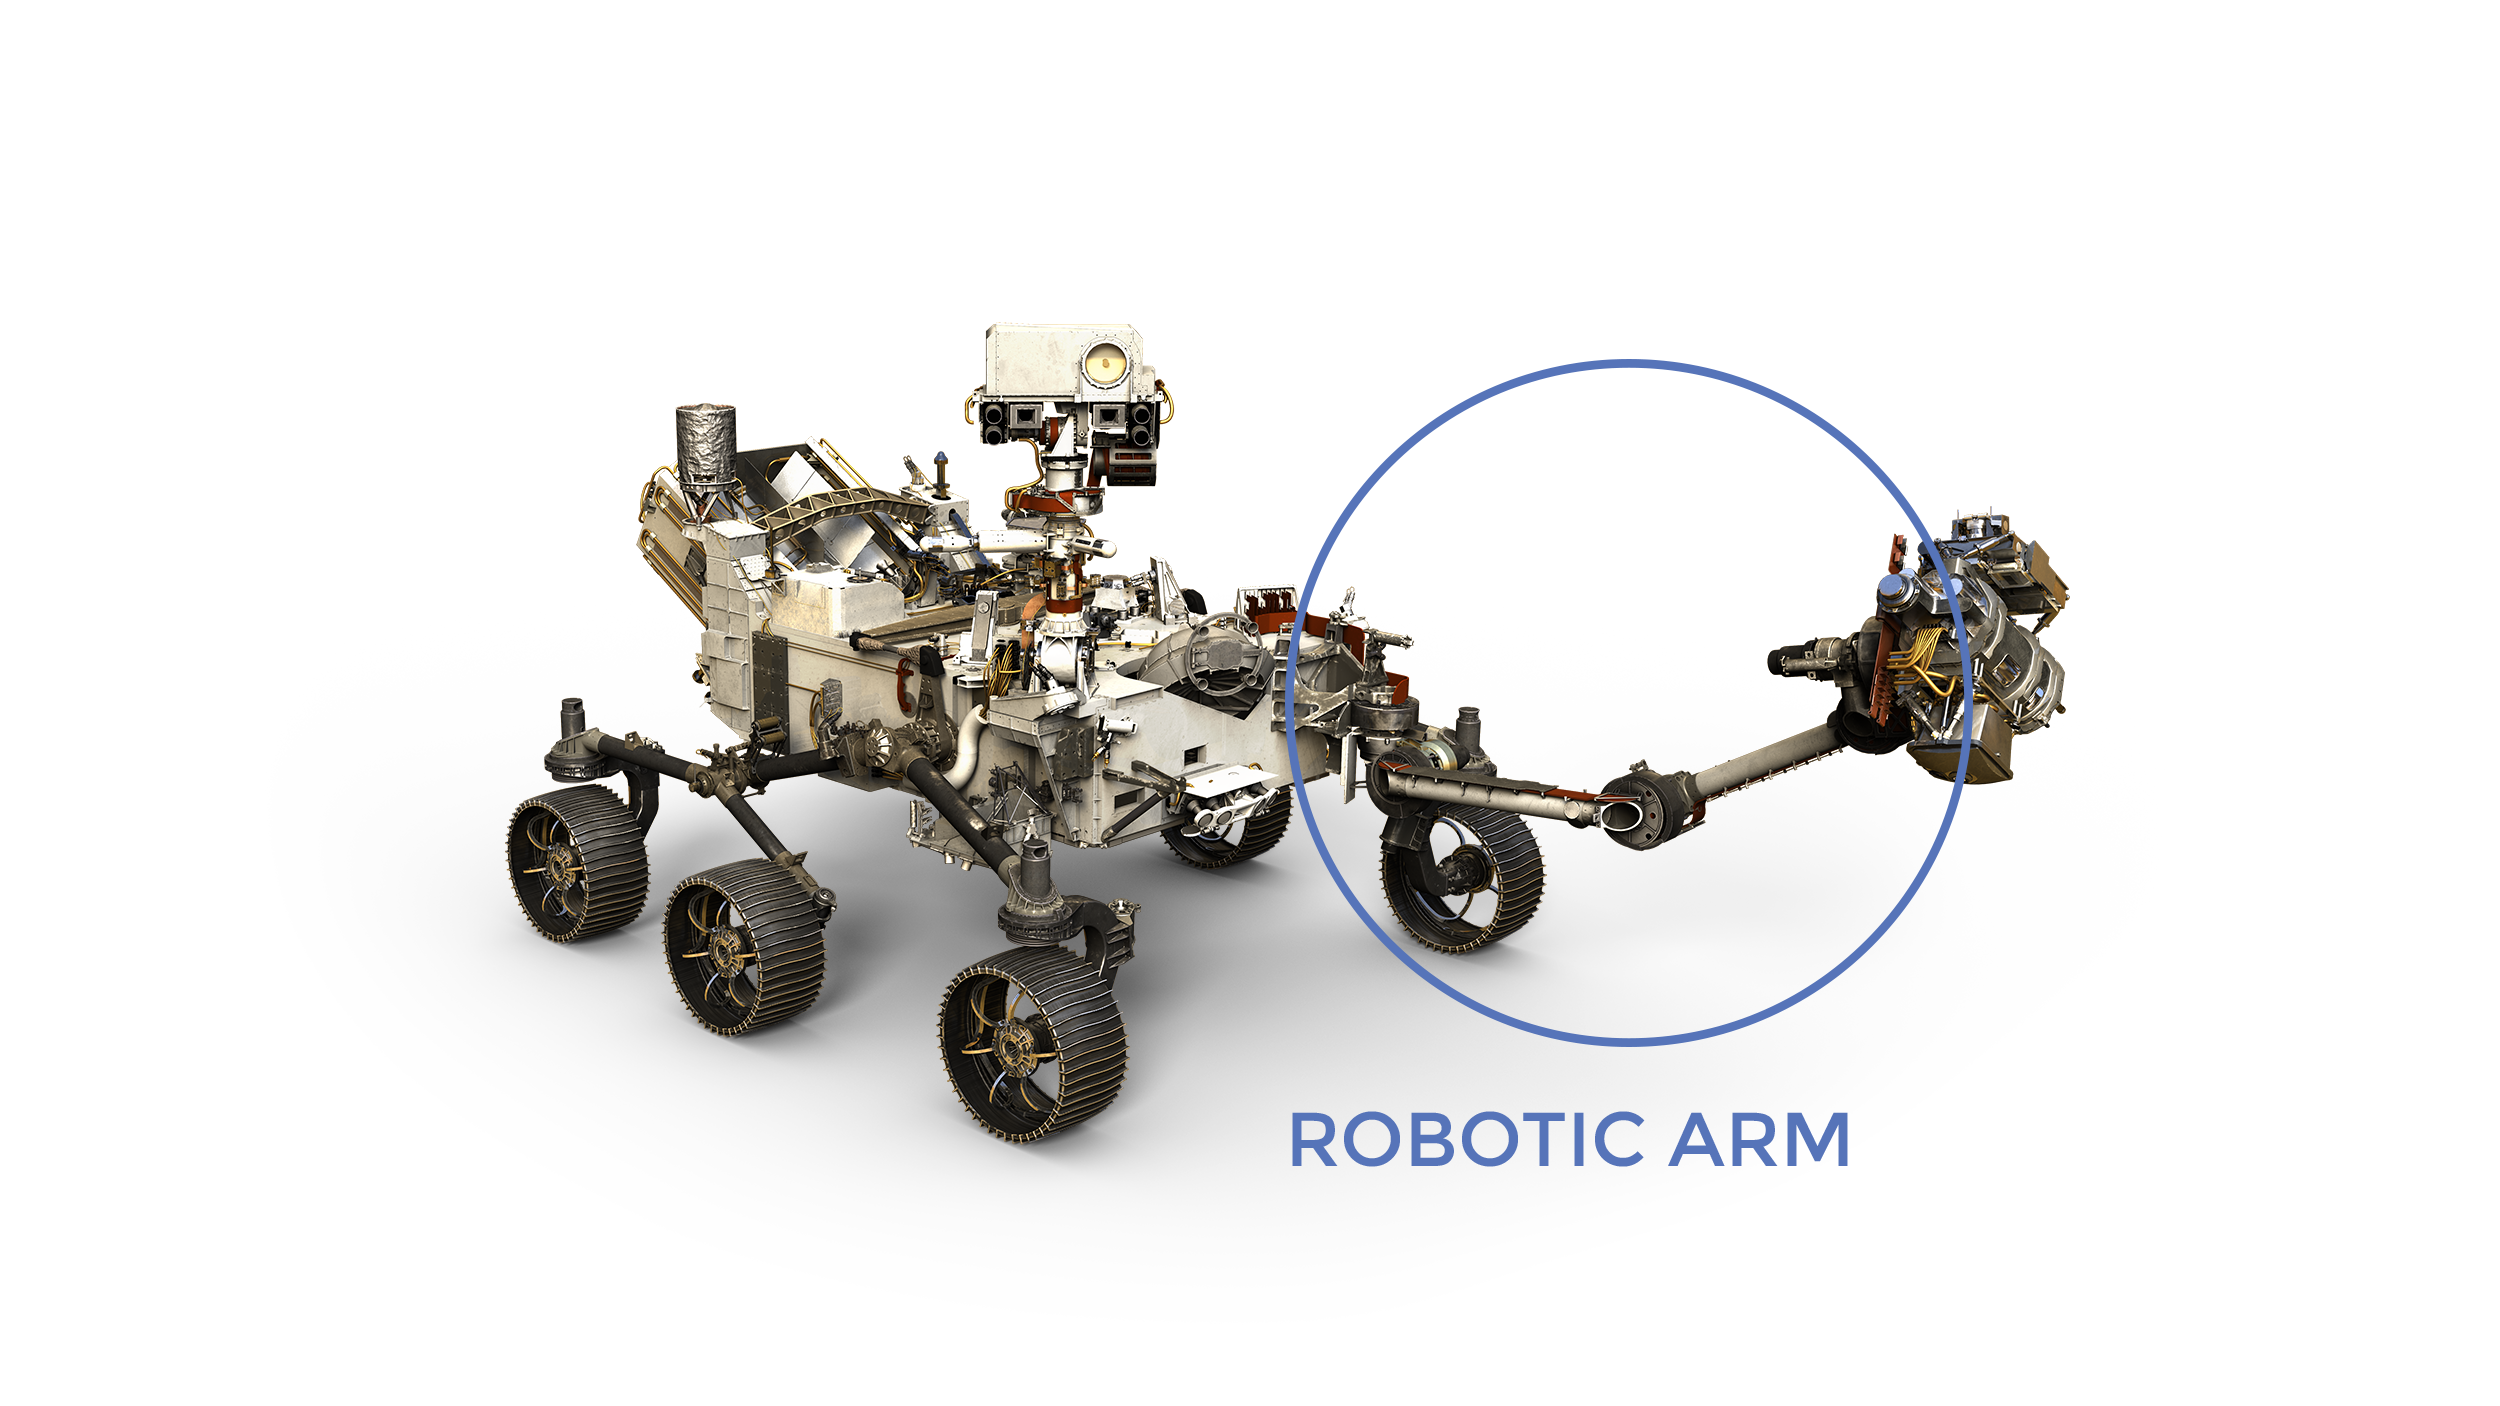 Mars 2020 Robotic Arm